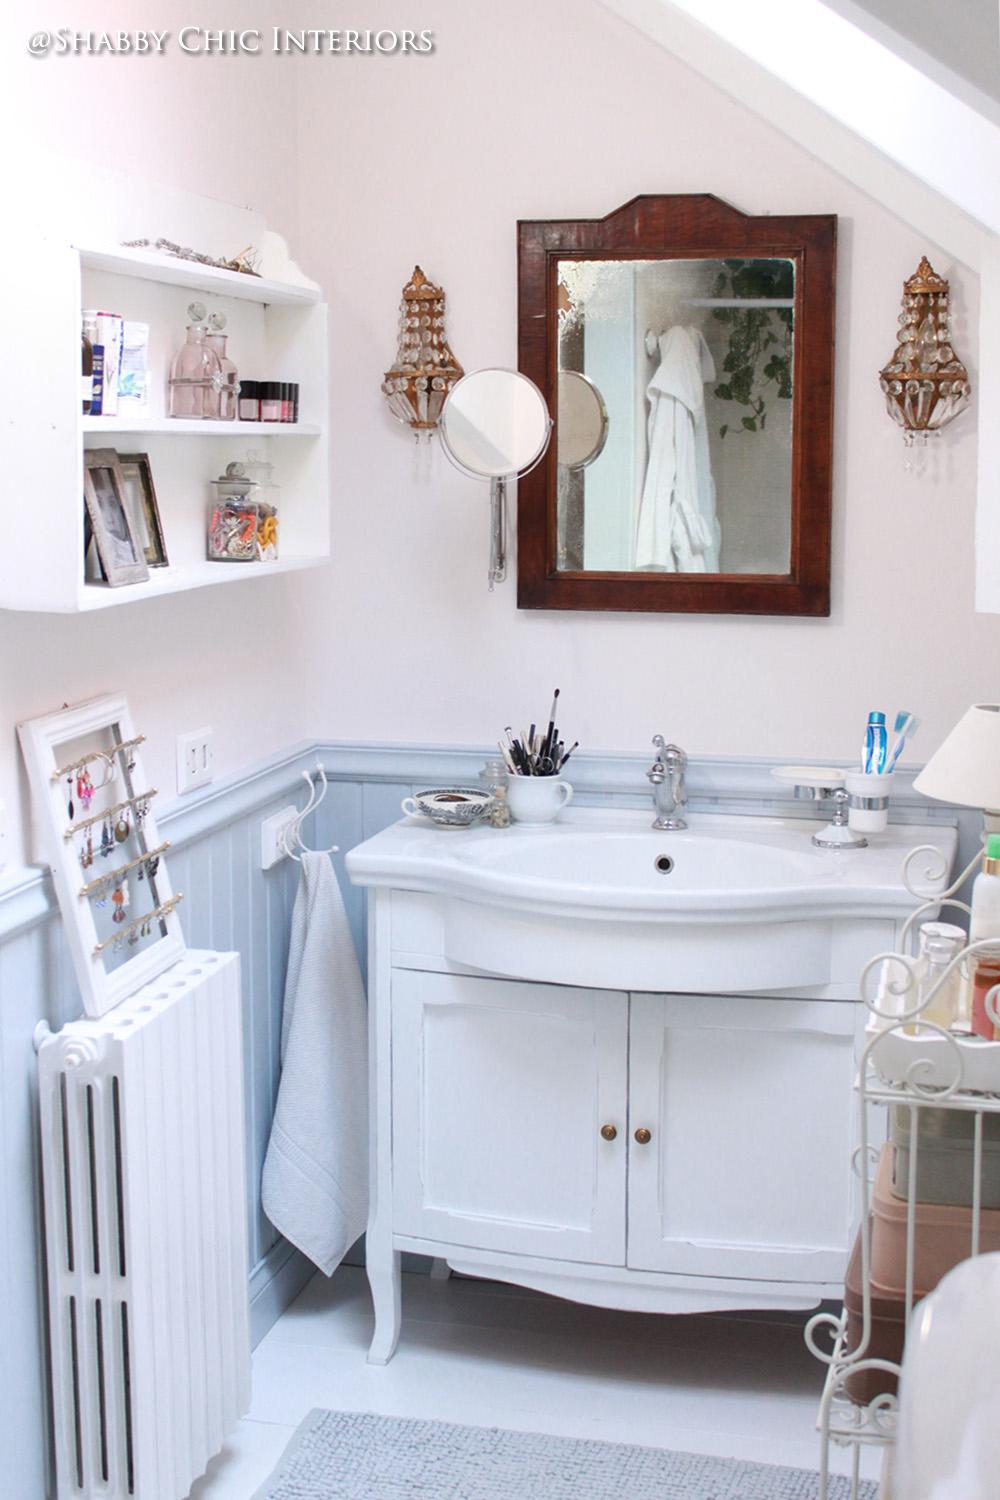 Shabby Chic Interiors My Home Bathroom Pinterest